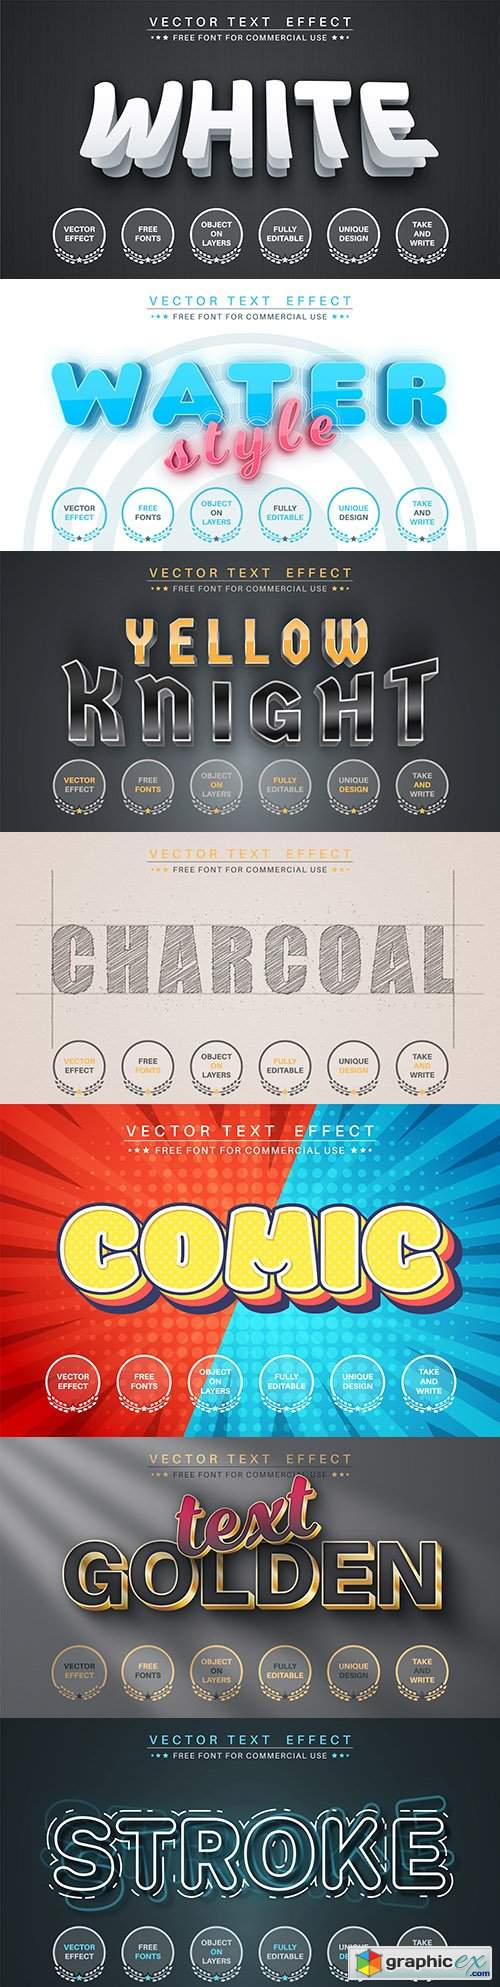 Editable font and 3d effect text design collection illustration 52